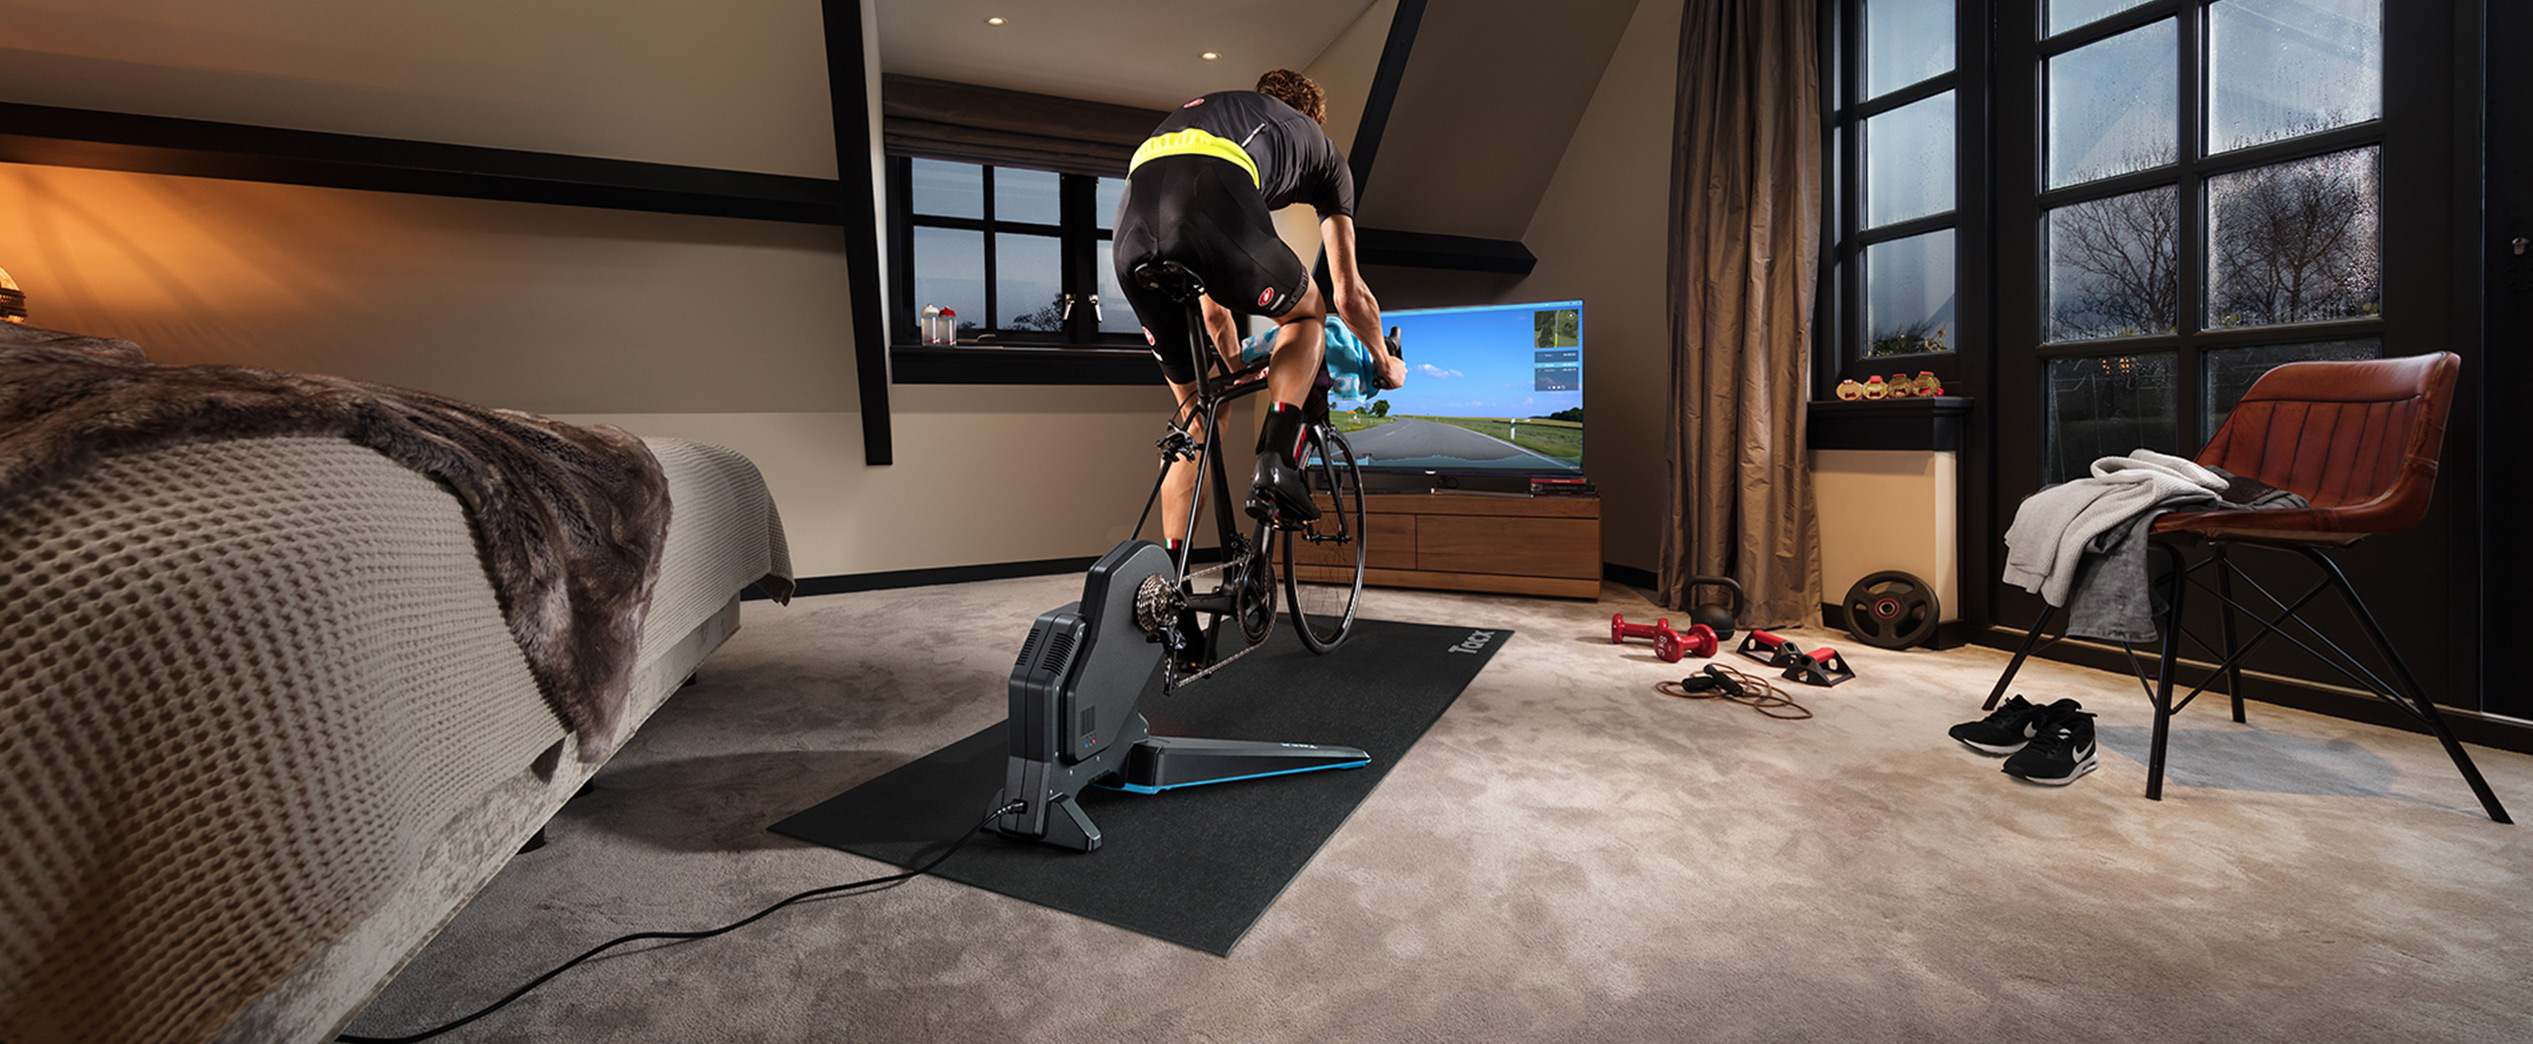 How it works | Tacx Software and apps | Indoor cycling software